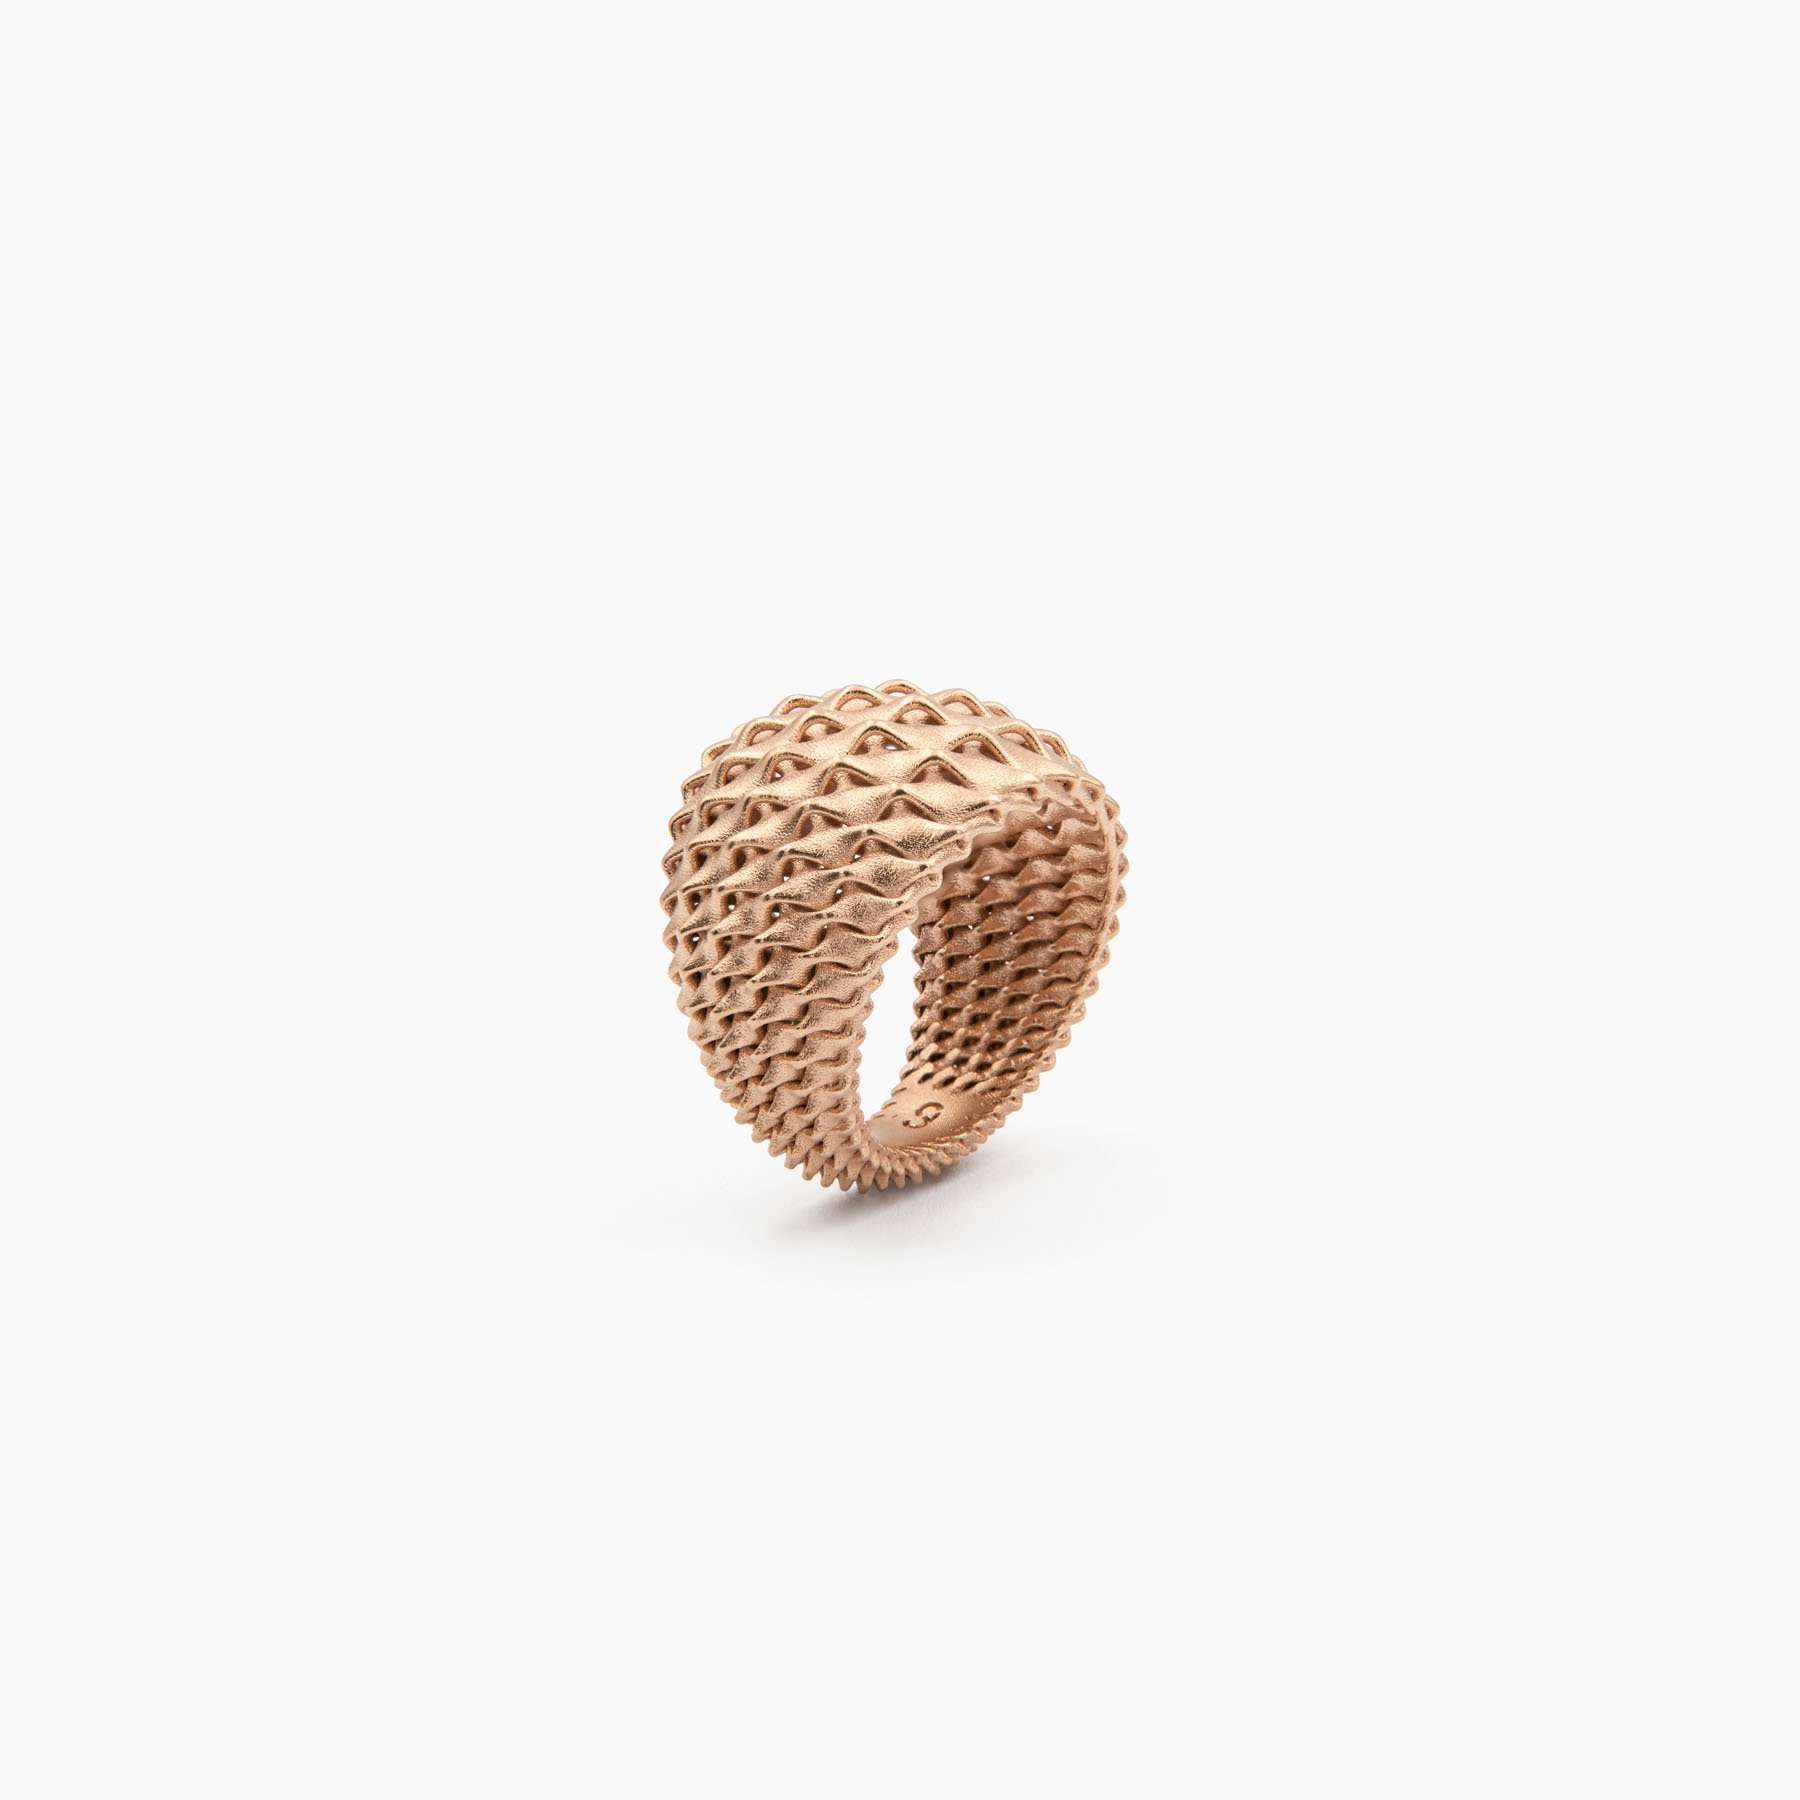 Emi Cocktail Ring | Size 48 | Article code: Emi-Cocktail-Ring-48